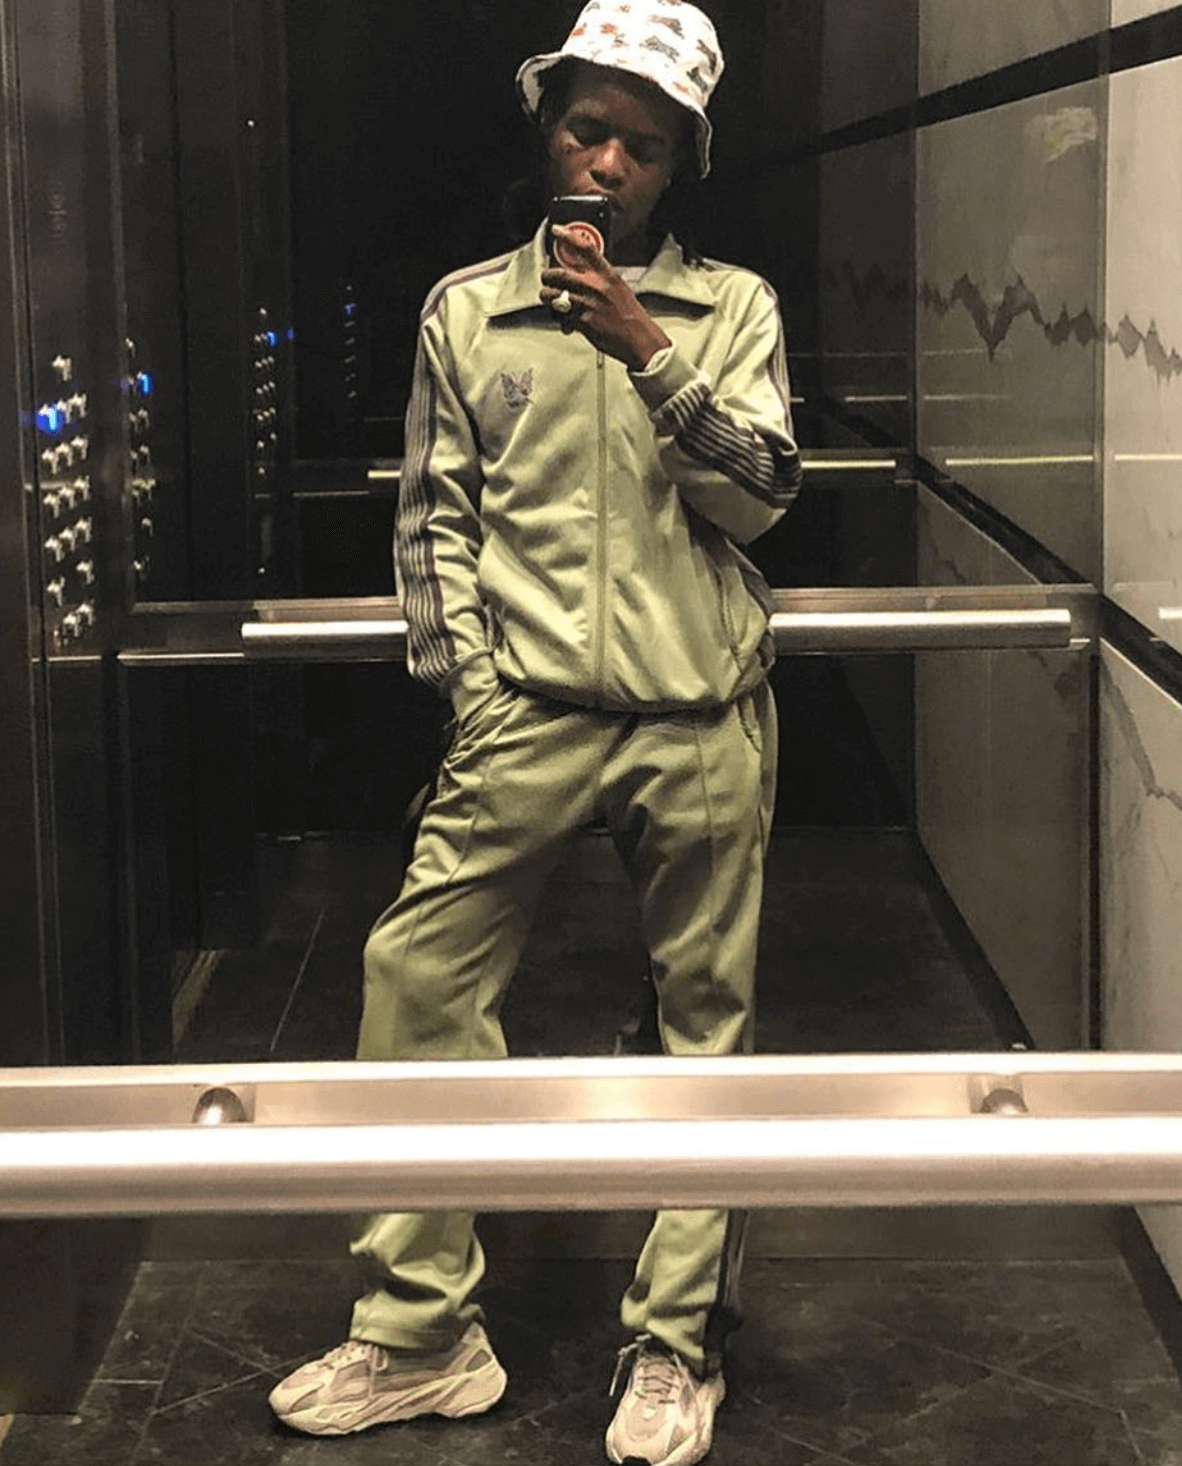 Ian Connor in the adidas Yeezy Boost 700 V2